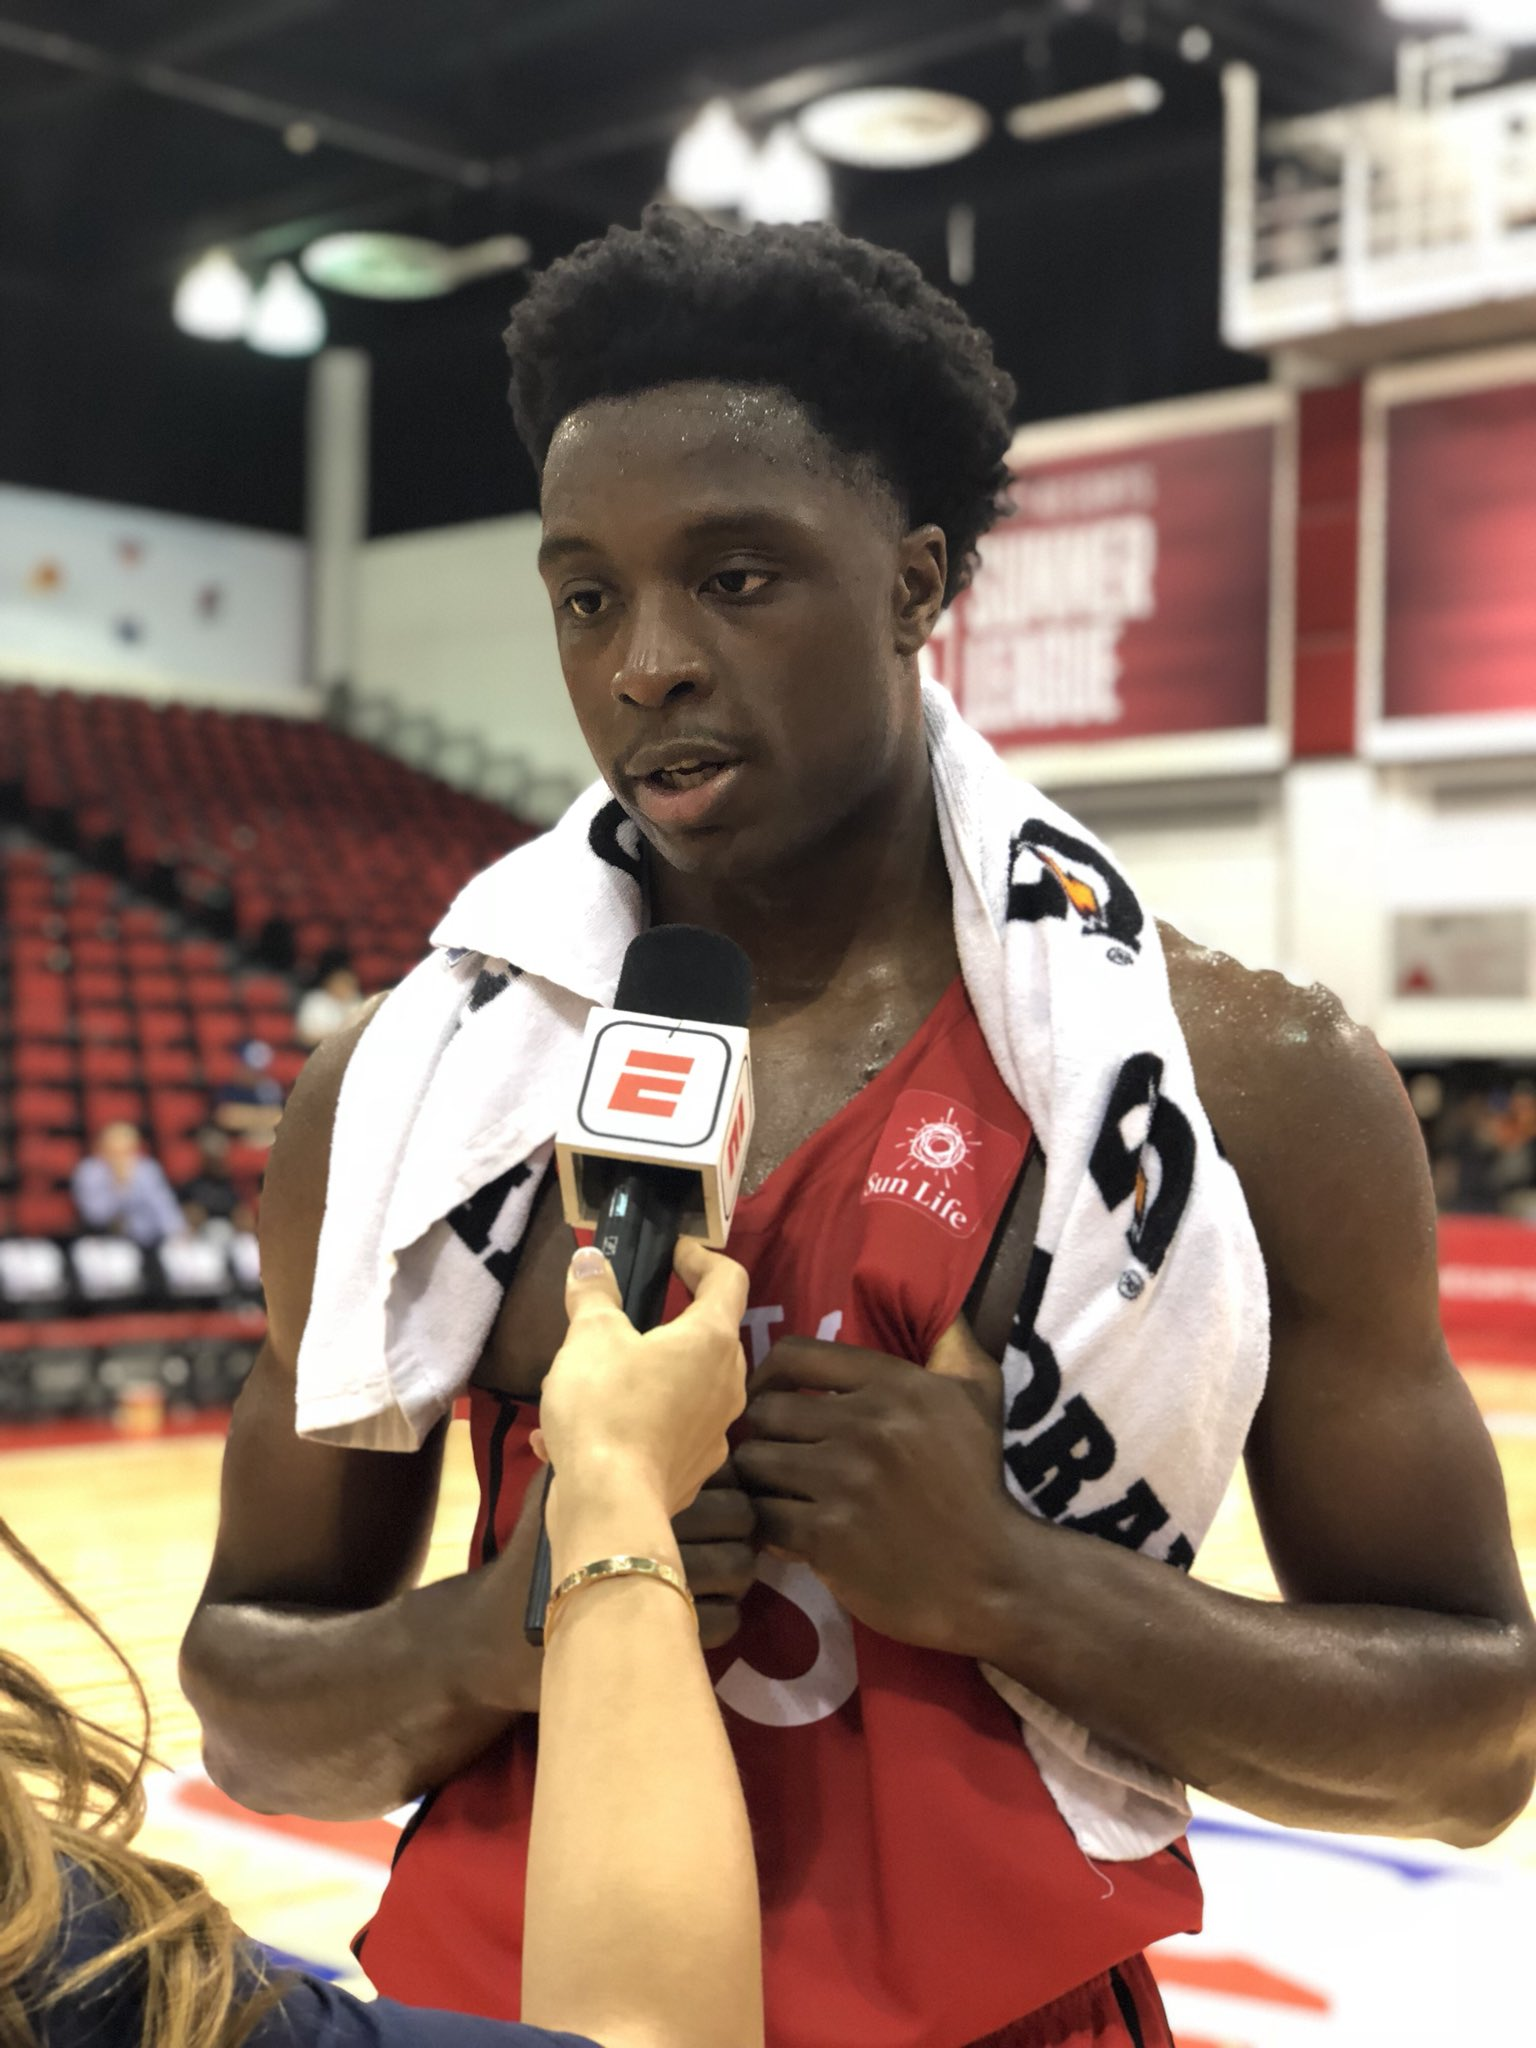 OG Anunoby scores a game-high 22 PTS to help the @Raptors advance in the @NBASummerLeague playoffs! #NBASummer https://t.co/lMJMb6GiEd